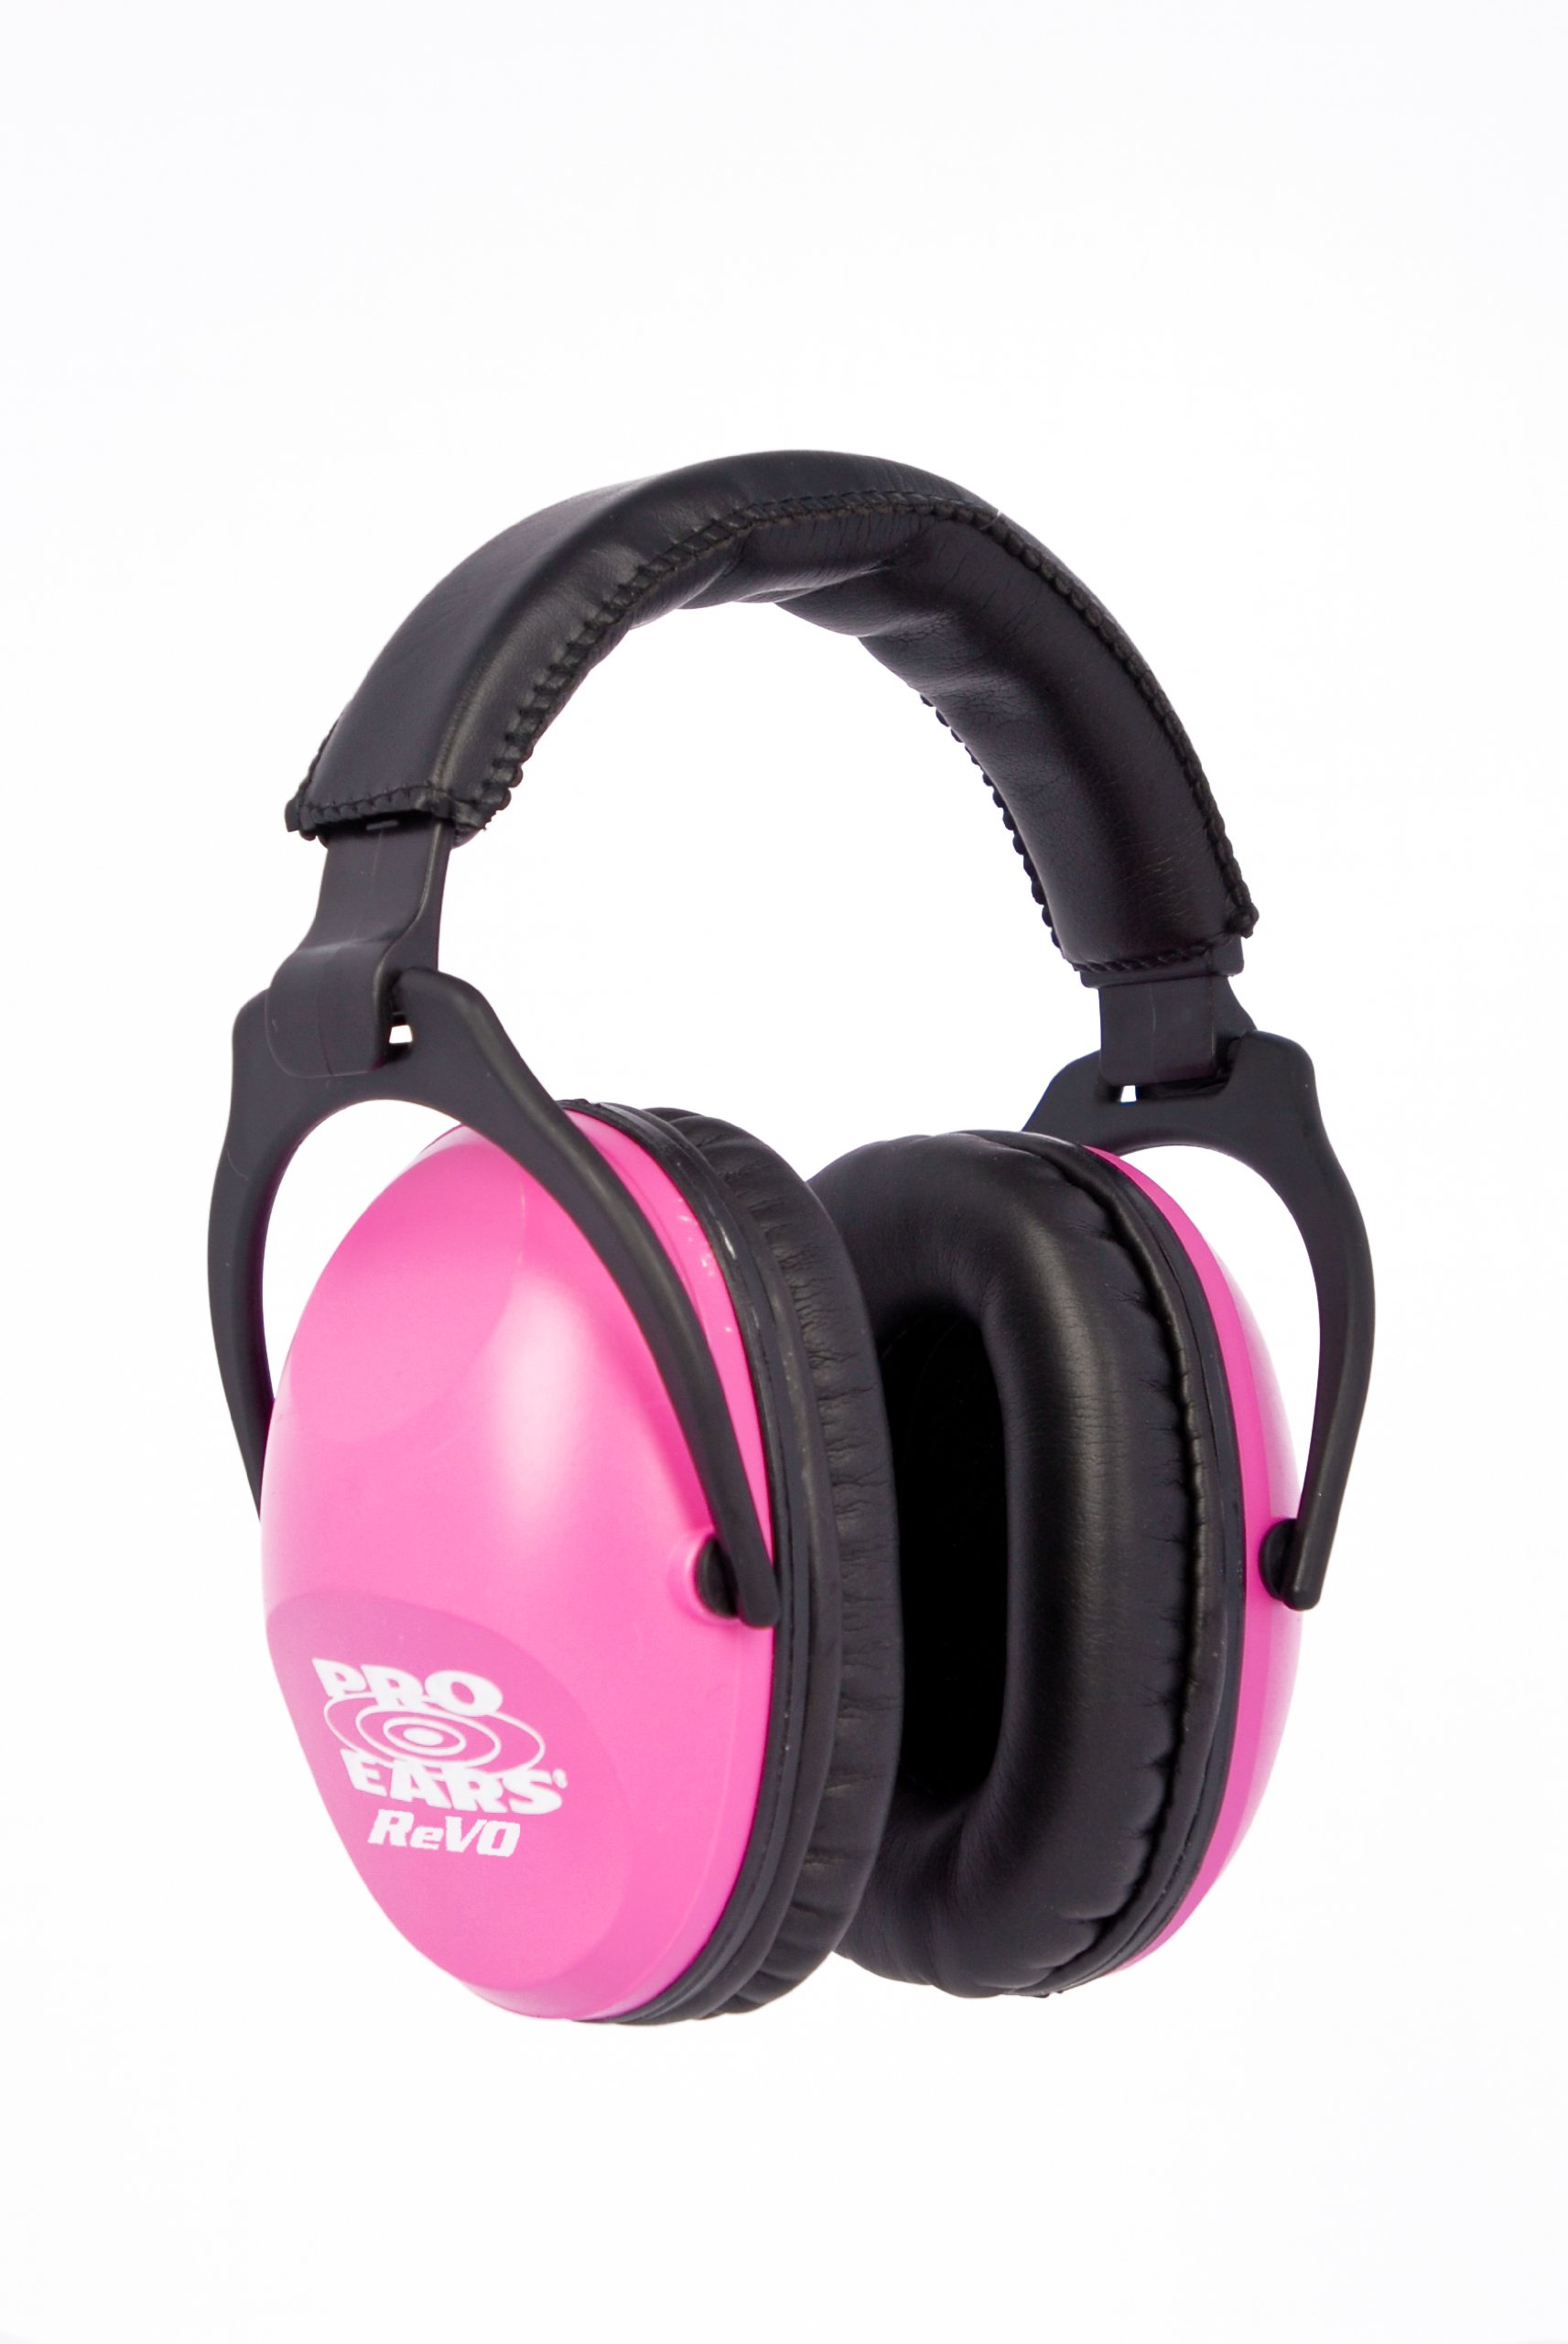 Pro Ears - ReVO - Hearing Protection - NRR 25 - Youth and Women Ear Muffs - Neon Pink by Pro Ears